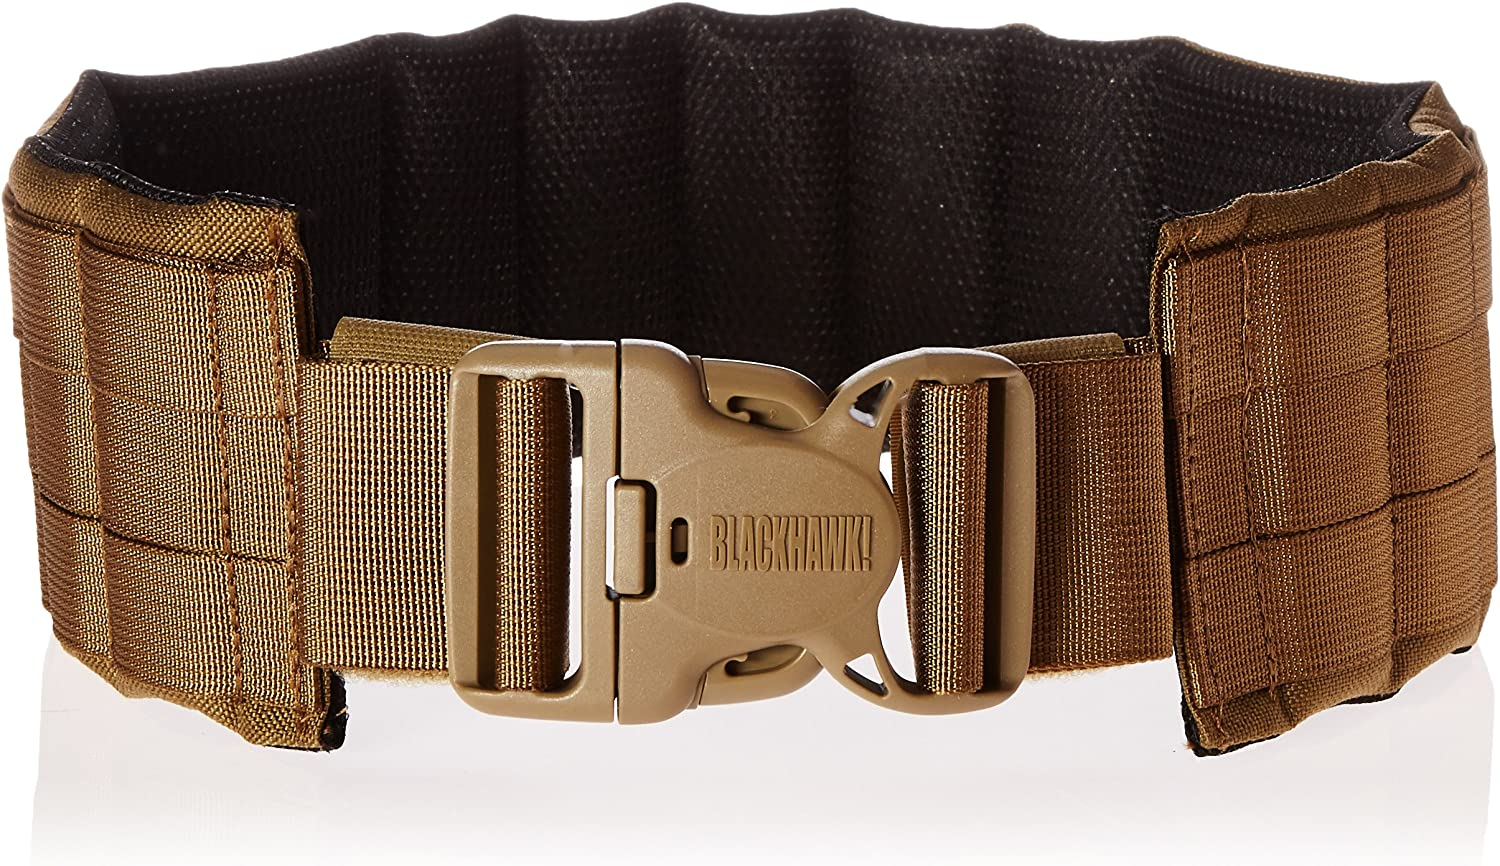 BLACKHAWK  Padded Patrol Belt and Pad  Coyote Tan, Medium